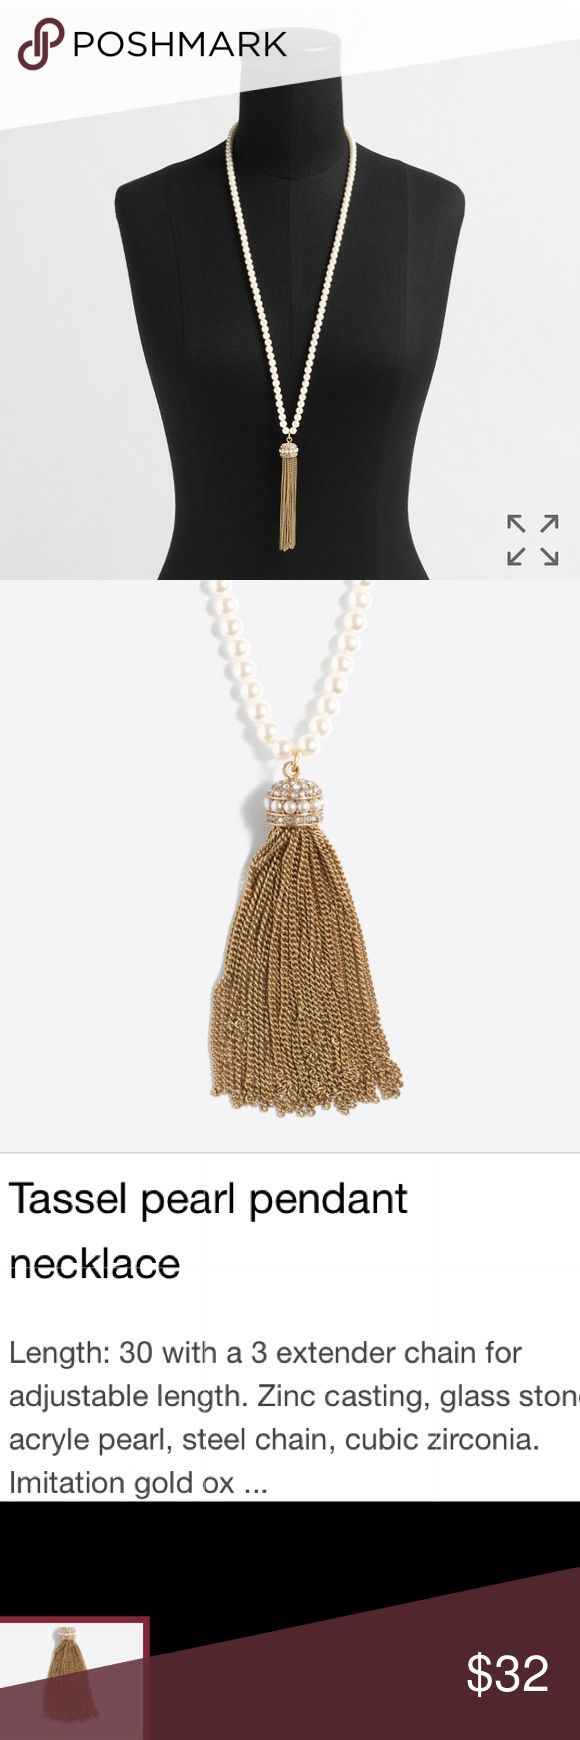 """🌷NWT J. CREW TASSEL PEARL PENDANT NECKLACE🌷 🌷BRAND NEW STUNNING TASSEL PEARL PENDANT NECKLACE FROM J. CREW LOOKS NEARLY IDENTICAL TO TIFFANY'S. 30"""" w/3"""" EXTENDERS. SEE MATCHING EARRINGS IN MY CLOSET. THIS CLASSIC WILL LOOK BEAUTIFUL AND ELEGANT WITH A PLETHORA OF OUTFITS AND CAN BE KNOTTED TO WEAR A VARIETY OF DIFFERENT WAYS! A MUST FOR EVERY WOMAN'S WARDROBE. RETAIL $59.🌷 J. Crew Jewelry Necklaces"""